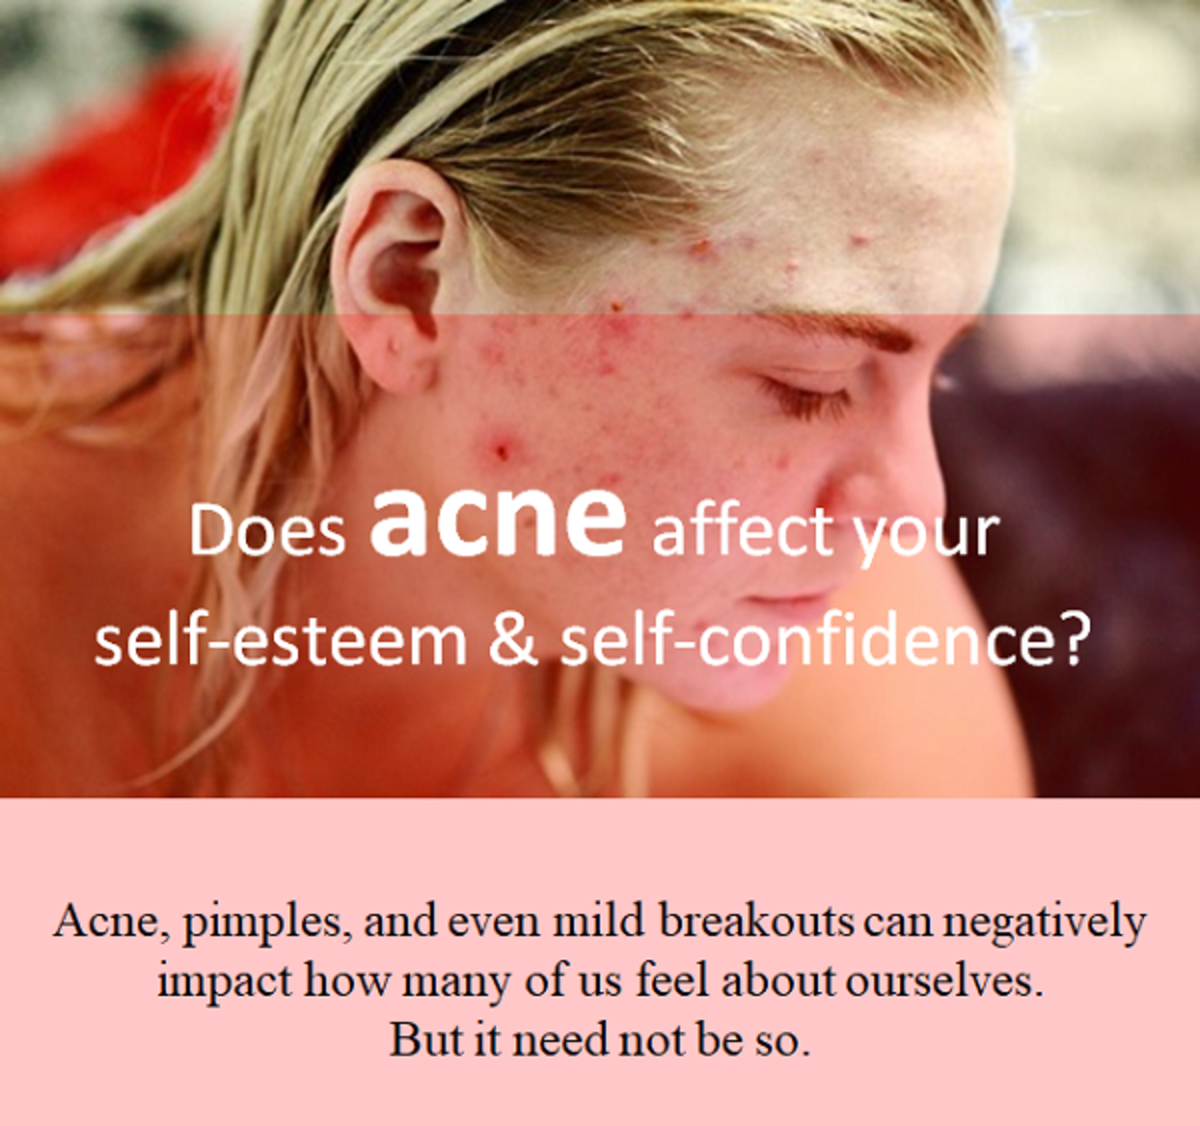 Acne can negatively affect your confidence.